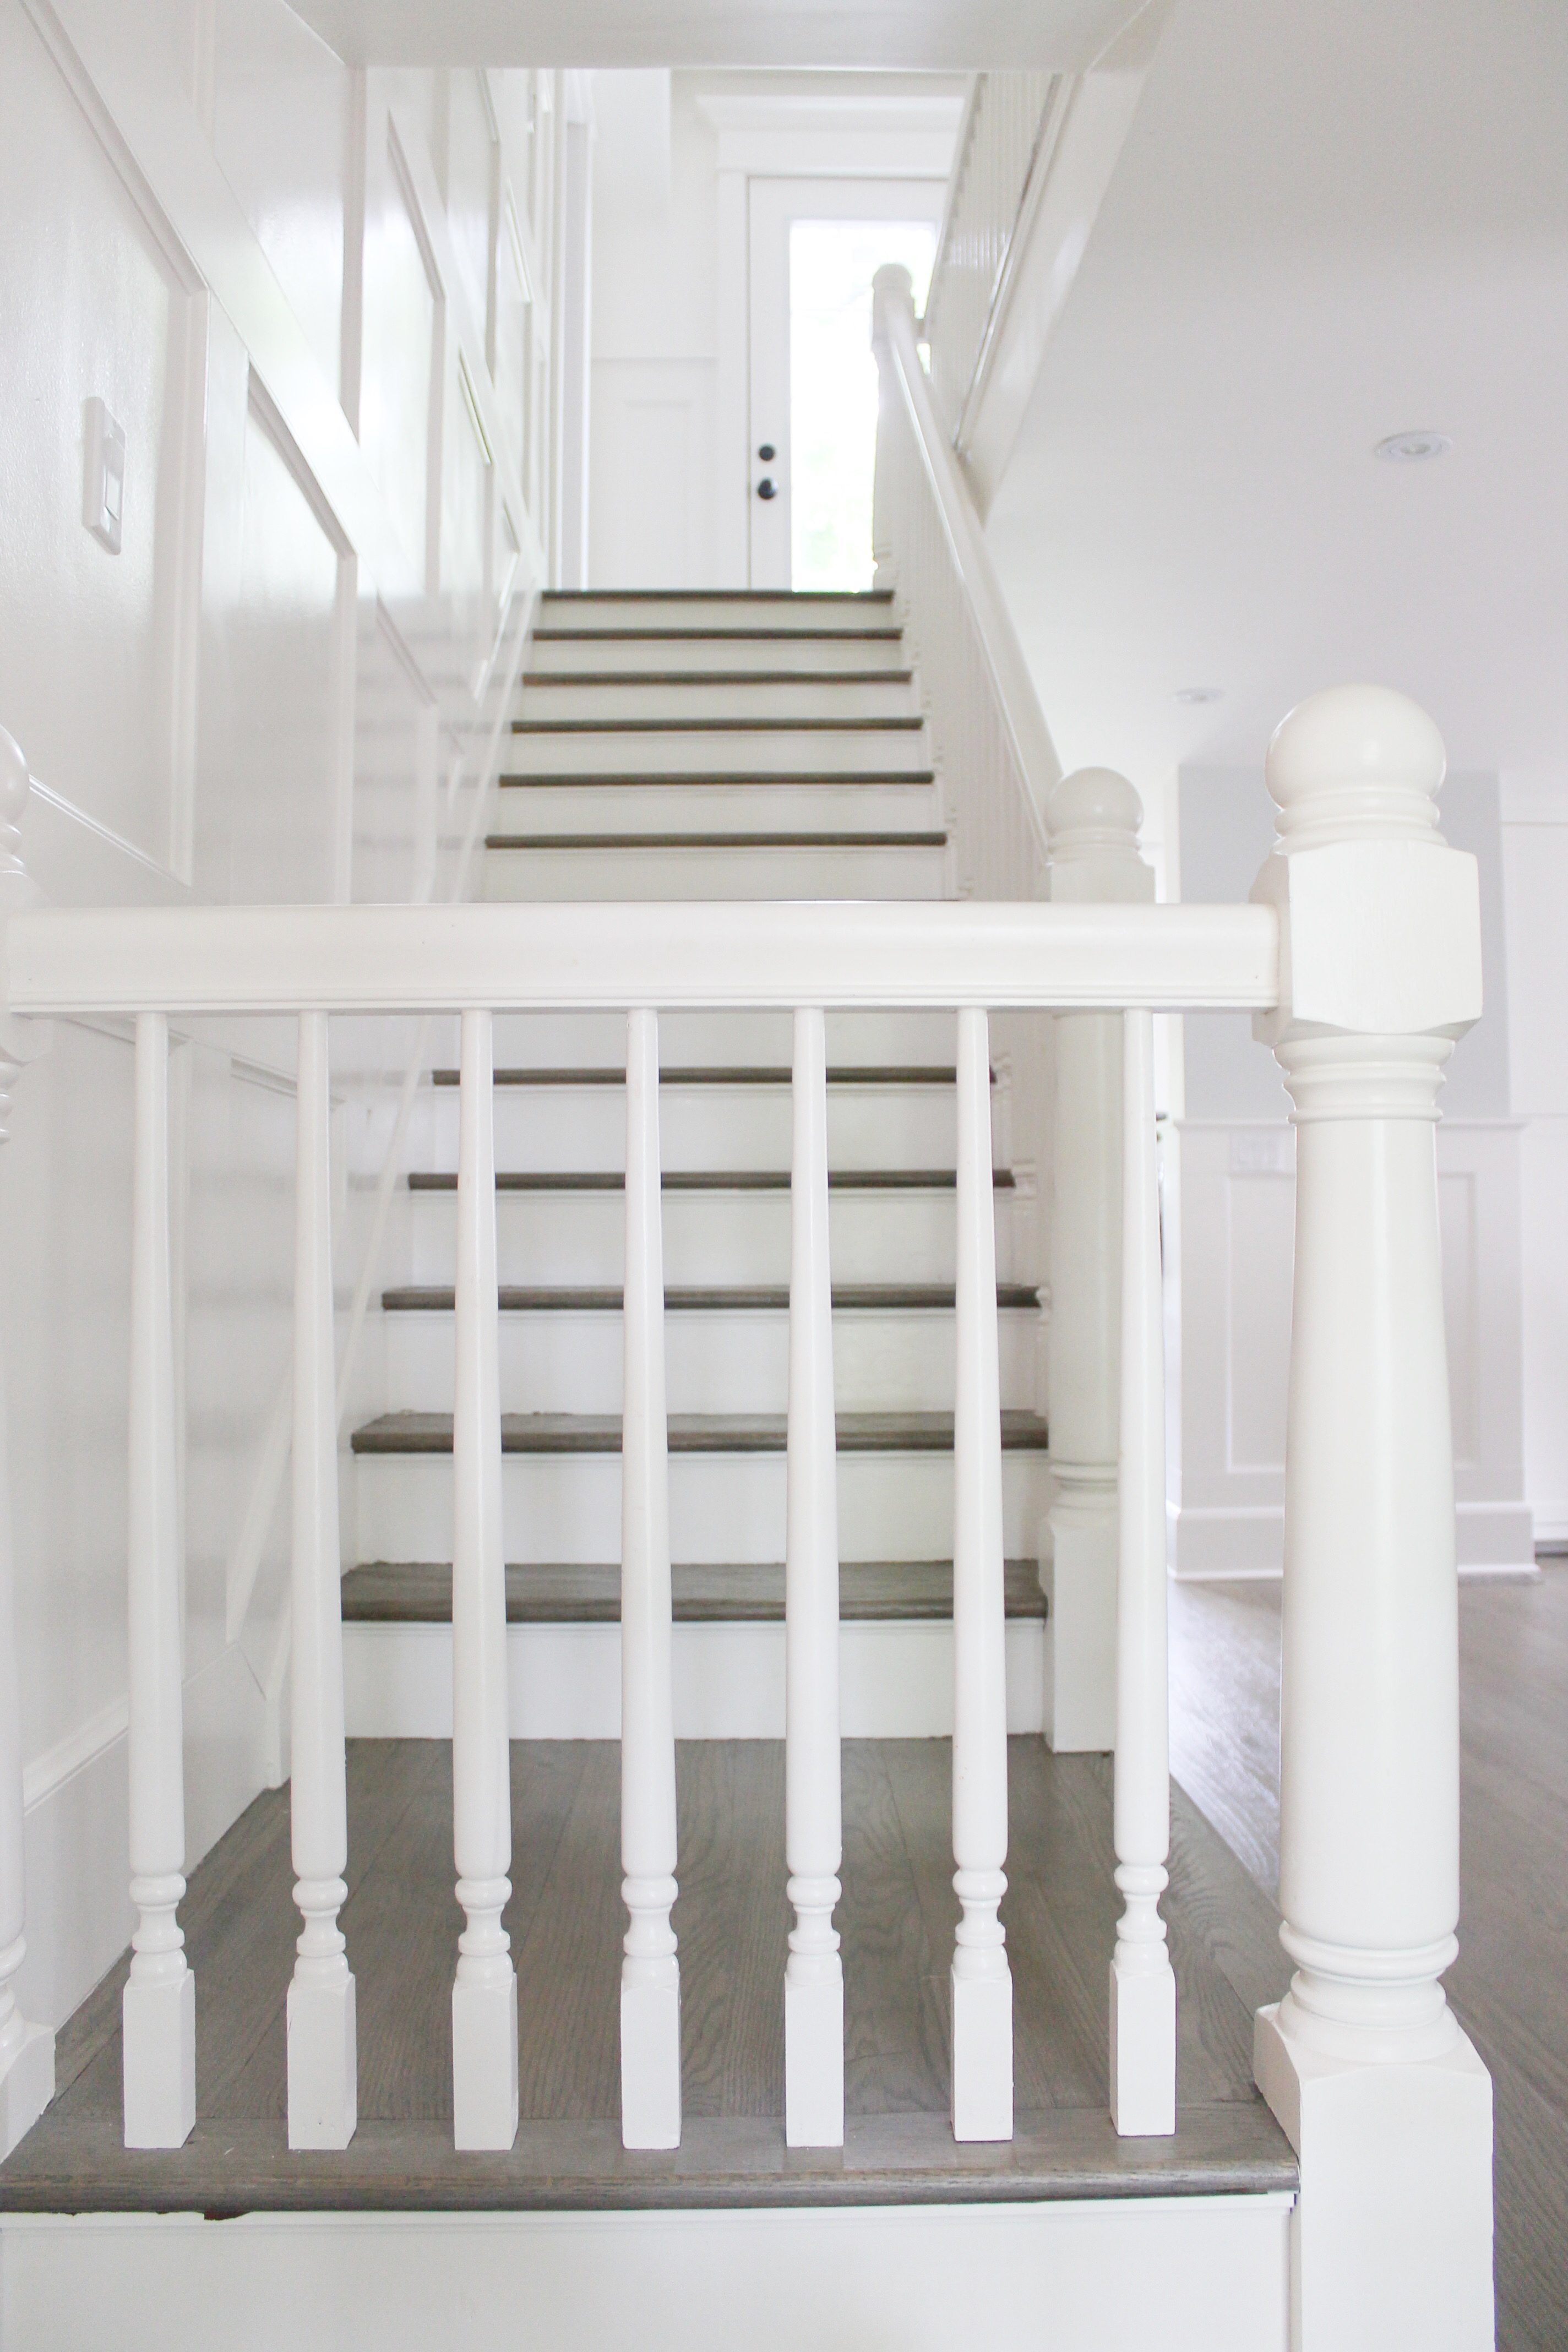 Treads In The Same Grey Stain As Floors Painting Out Posts Banister And Spindles White By Carrying Wainscoting Up Stair Wall